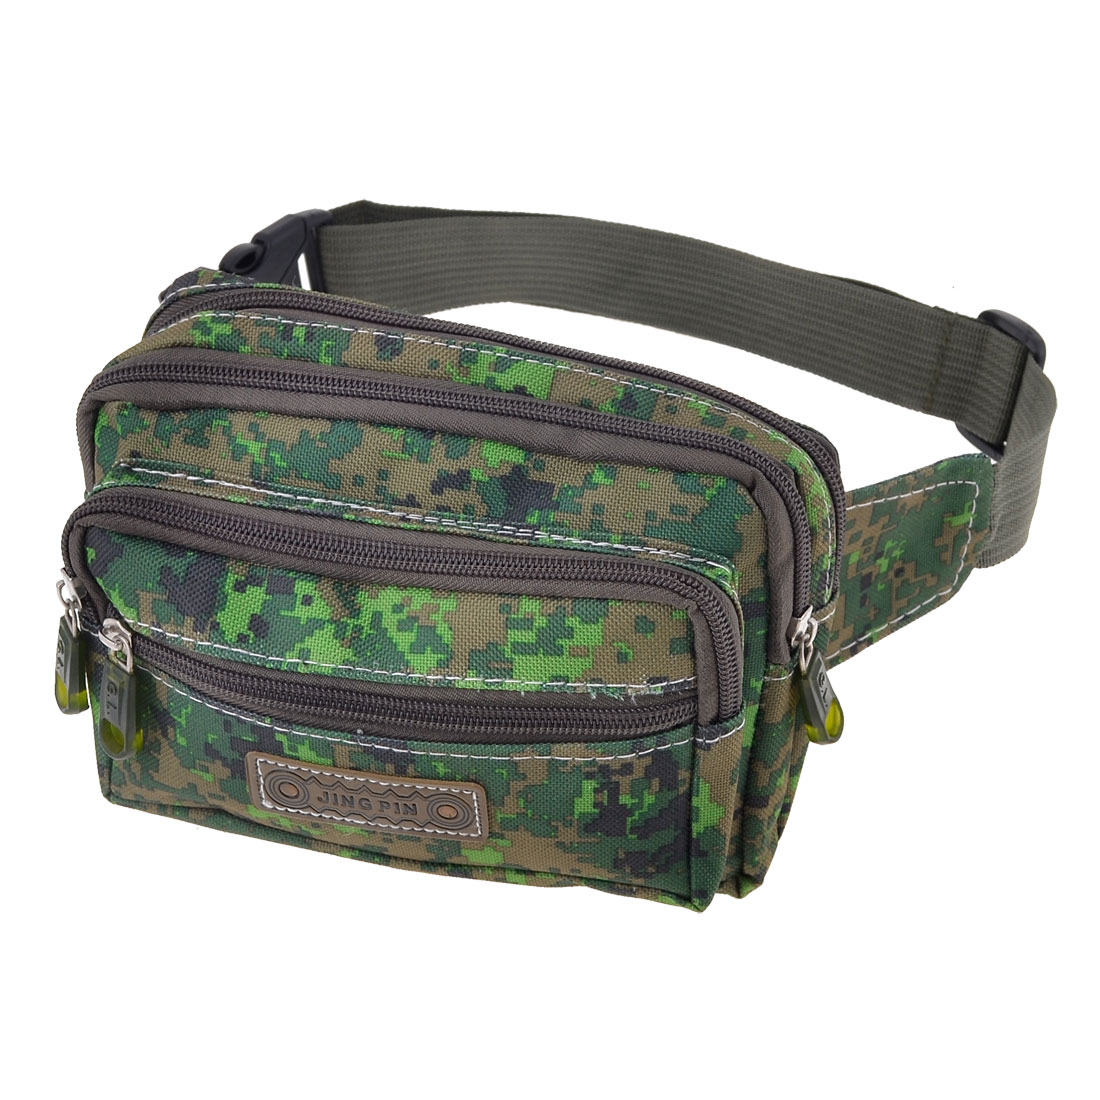 Portable Zipper Closure 4 Compartments Nylon Waist Pack Army Green for Soldier